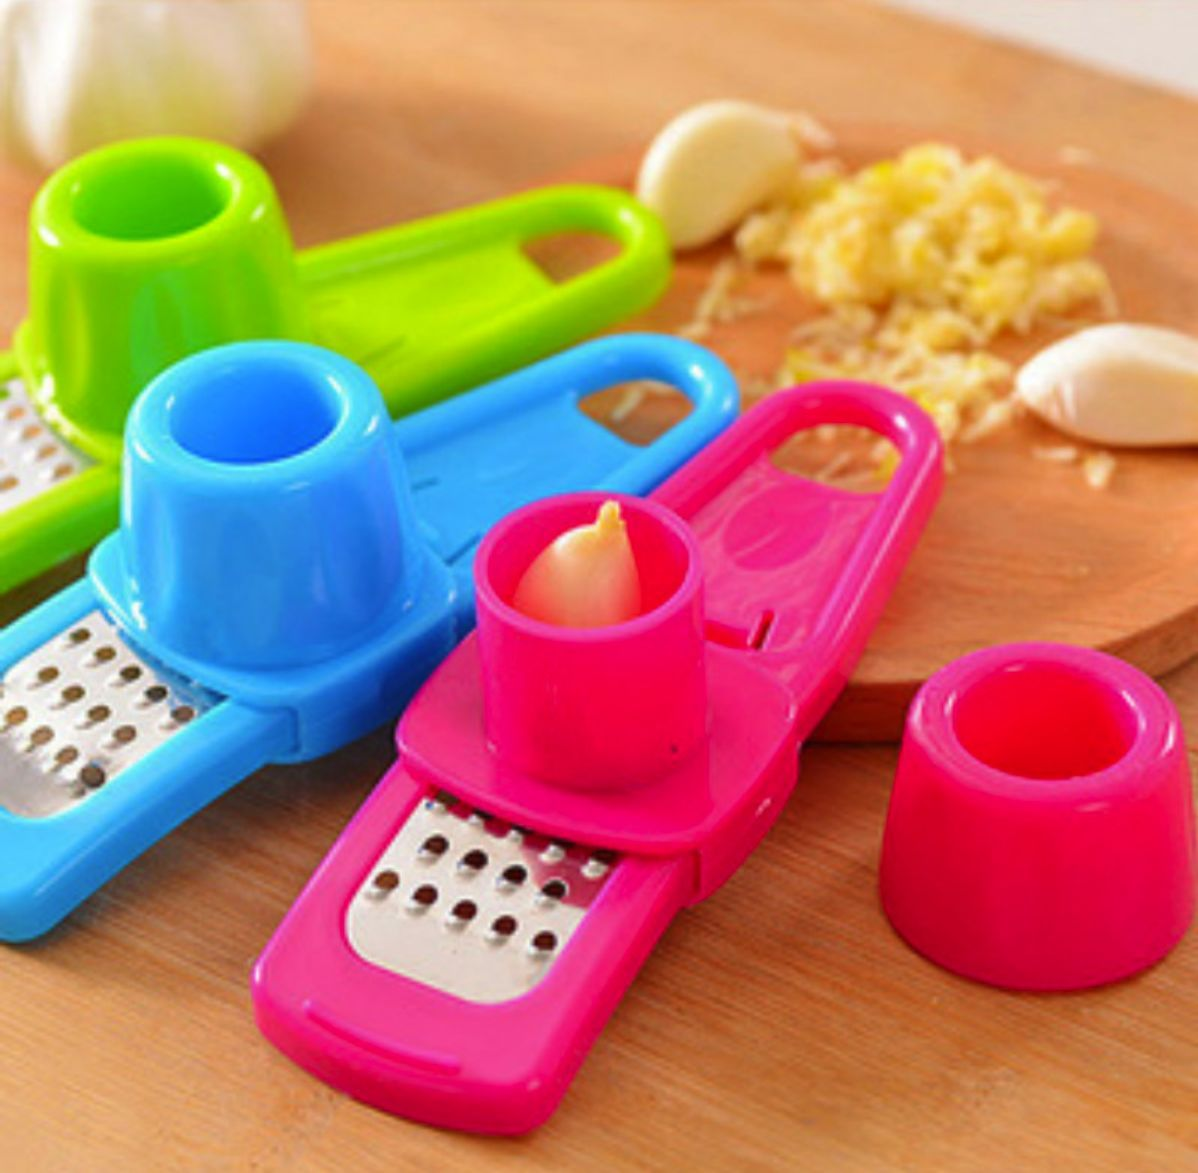 Multifunctional Ginger Garlic Press Grinding Grater Planer Slicer Mini Cutter